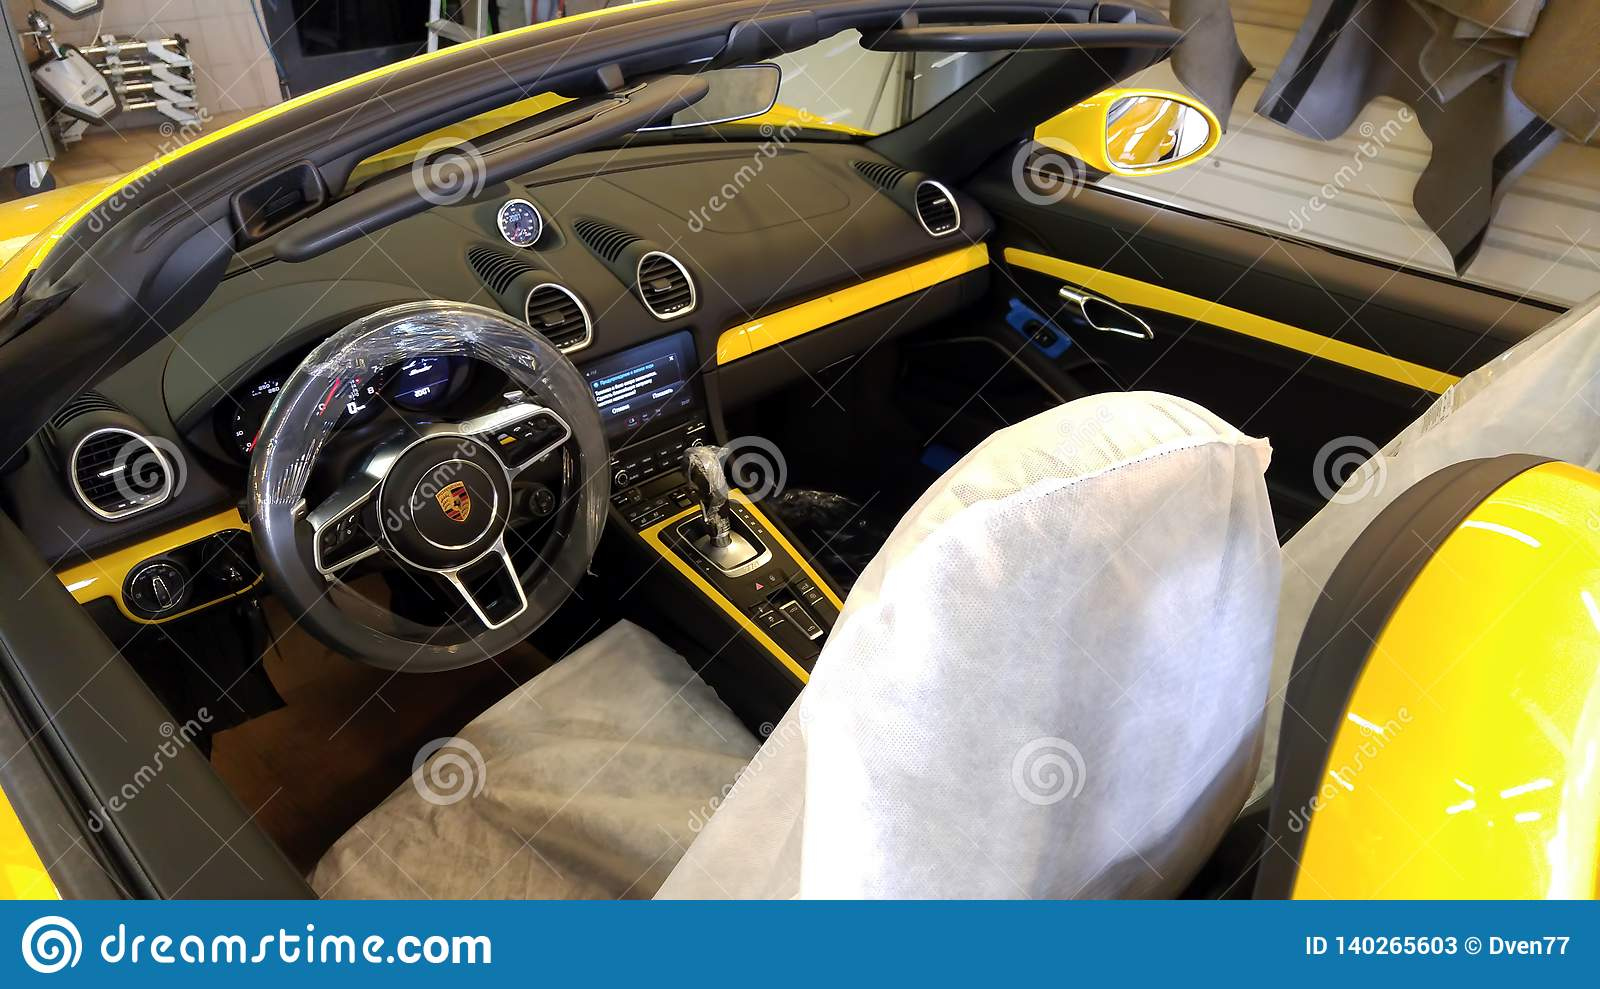 Moscow February 2019 New Yellow Porsche Boxster 718 In Service Station Presale Preparation And Verification Interior Top View Editorial Stock Photo Image Of Boxter Business 140265603